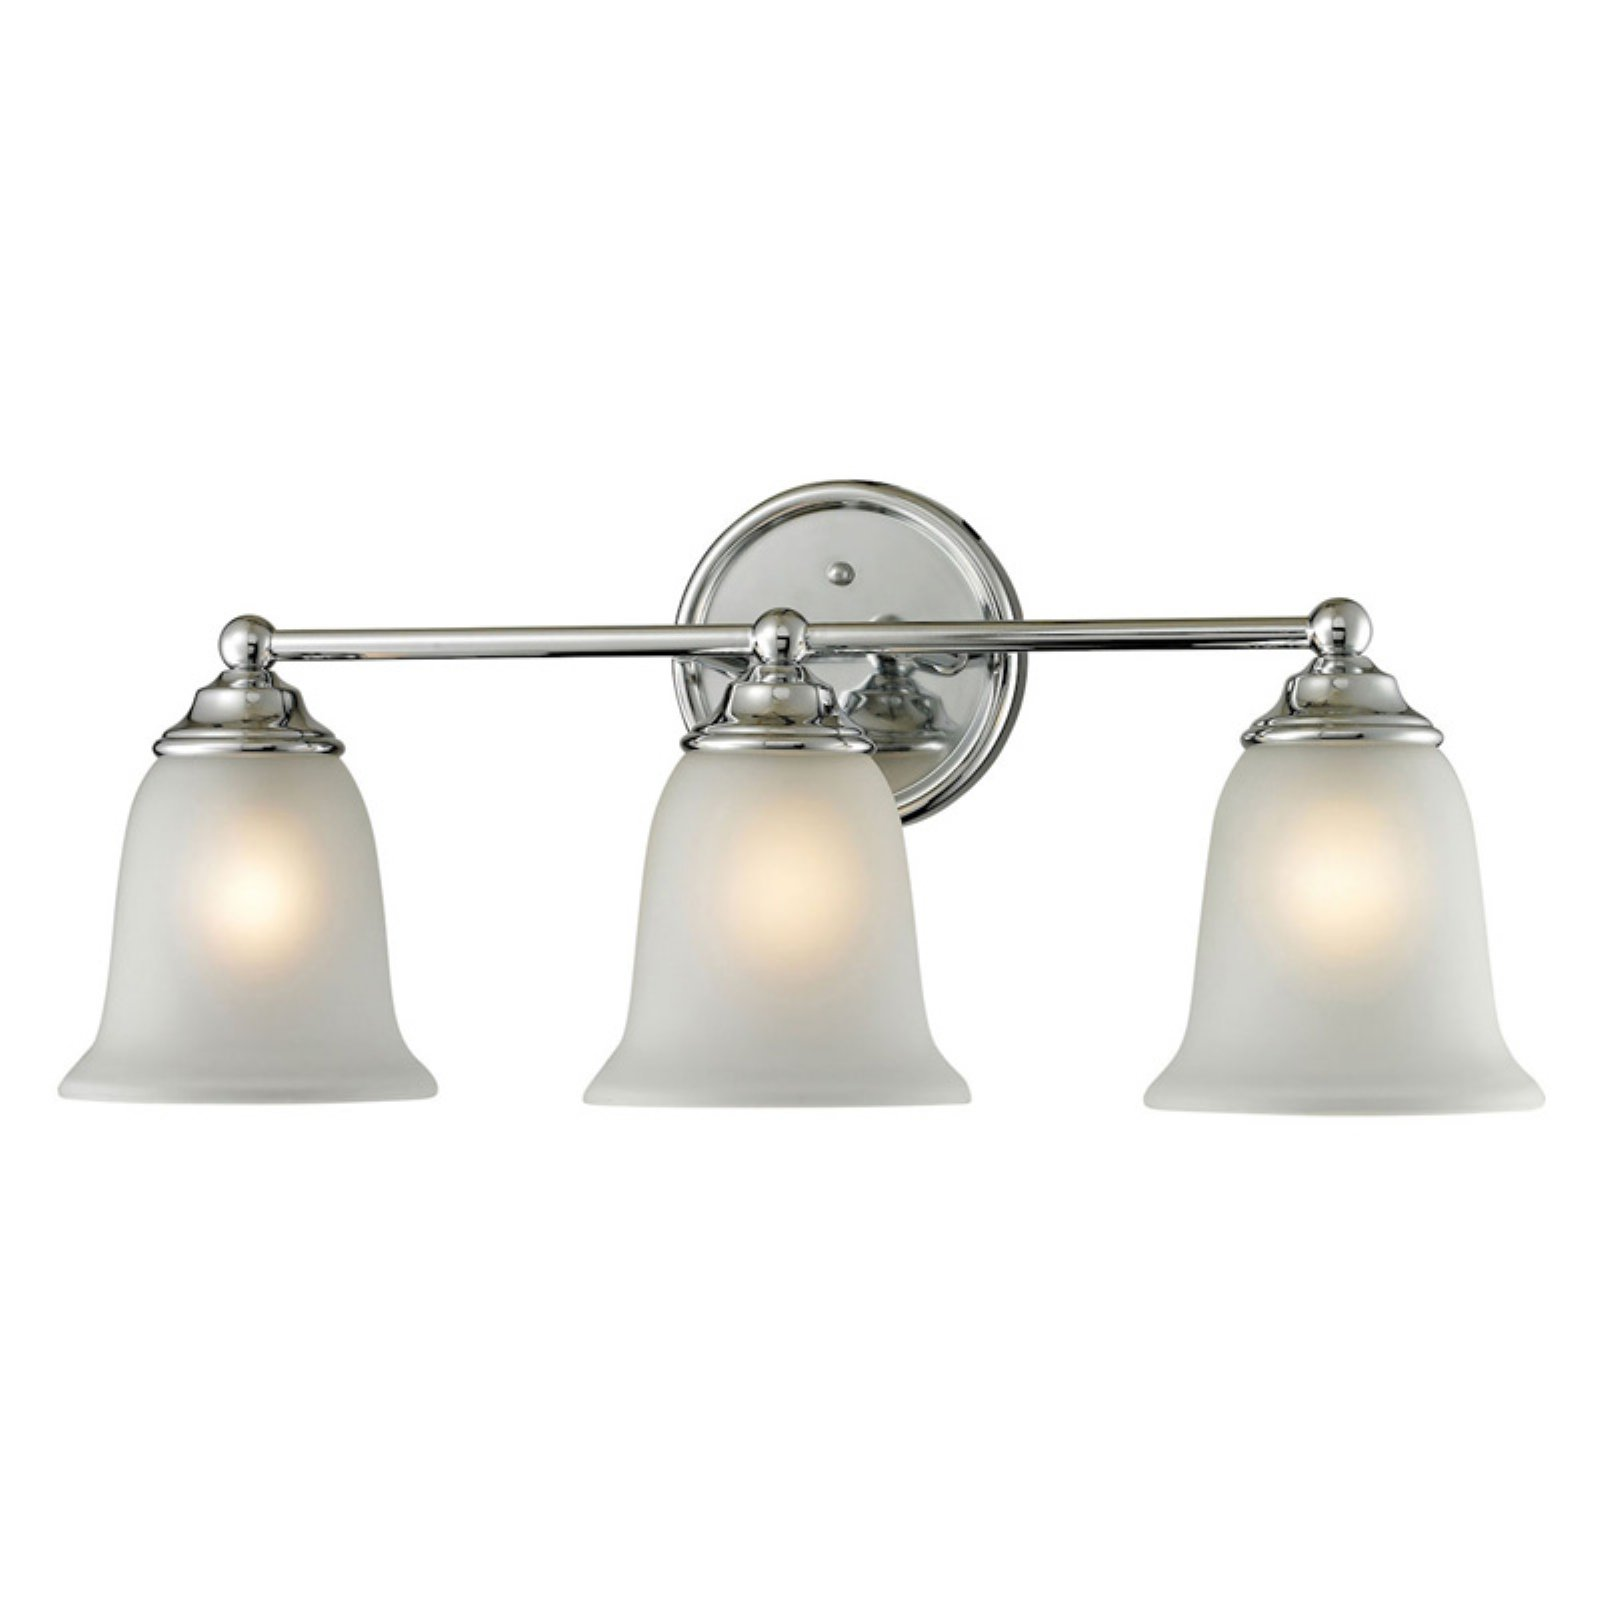 Thomas Lighting Sudbury 3 Light Vanity Light with Optional LED Bulbs by CornerStone